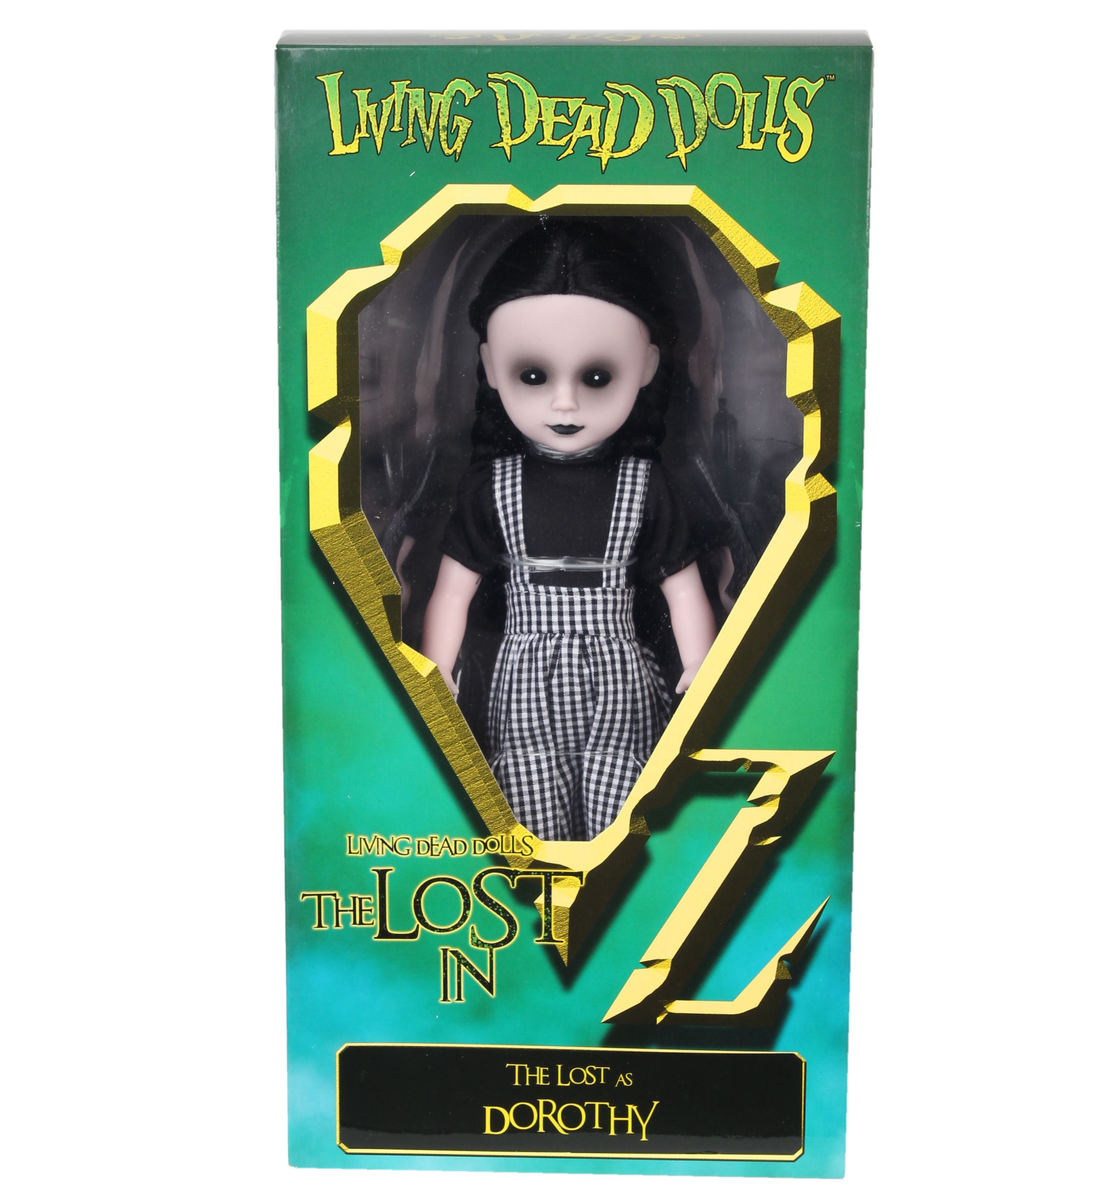 panenka LIVING DEAD DOLLS - The Lost as Dorothy - MEZ94510-2